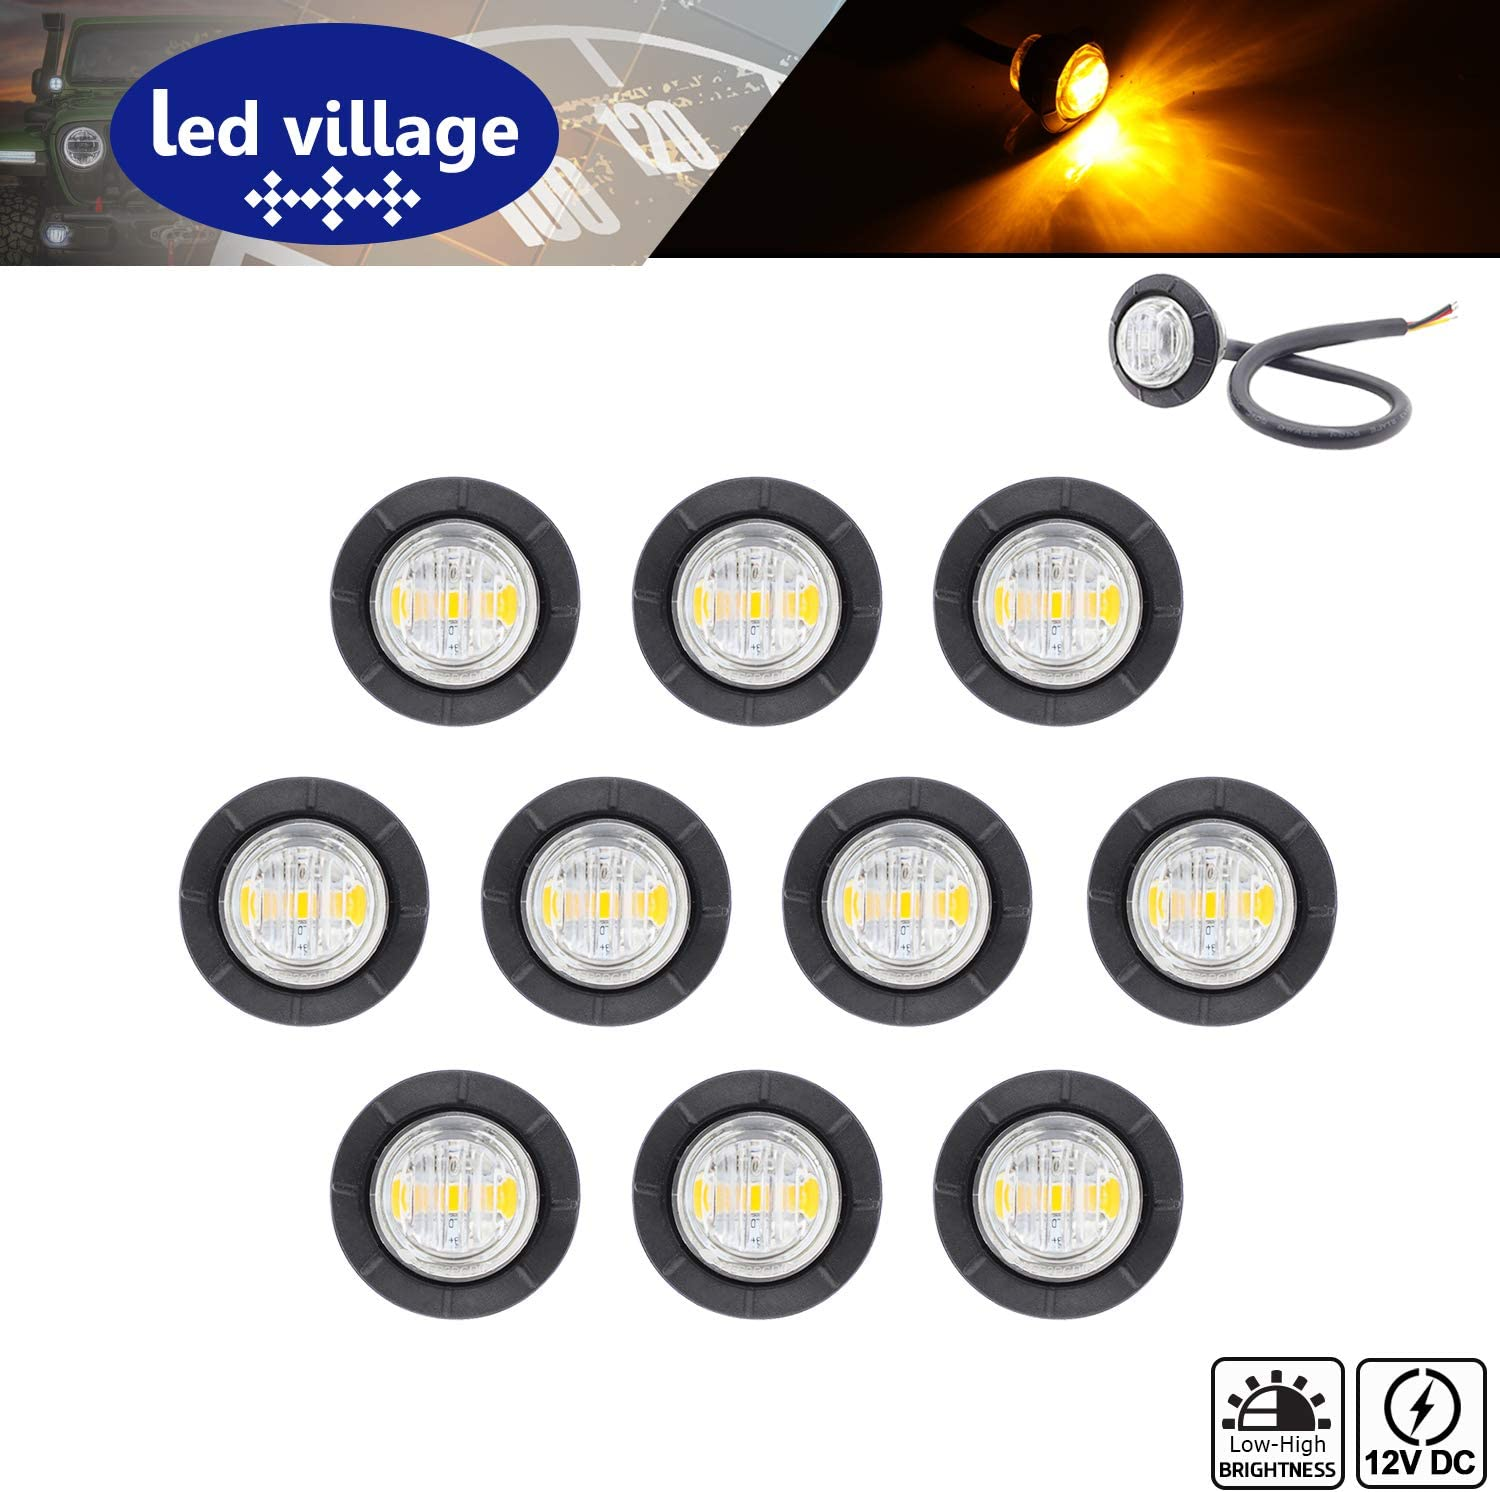 Pack of 10 LedVillage 3 4 Inch Amber LED Indi Max 63% Max 49% OFF OFF Lens Clear Round